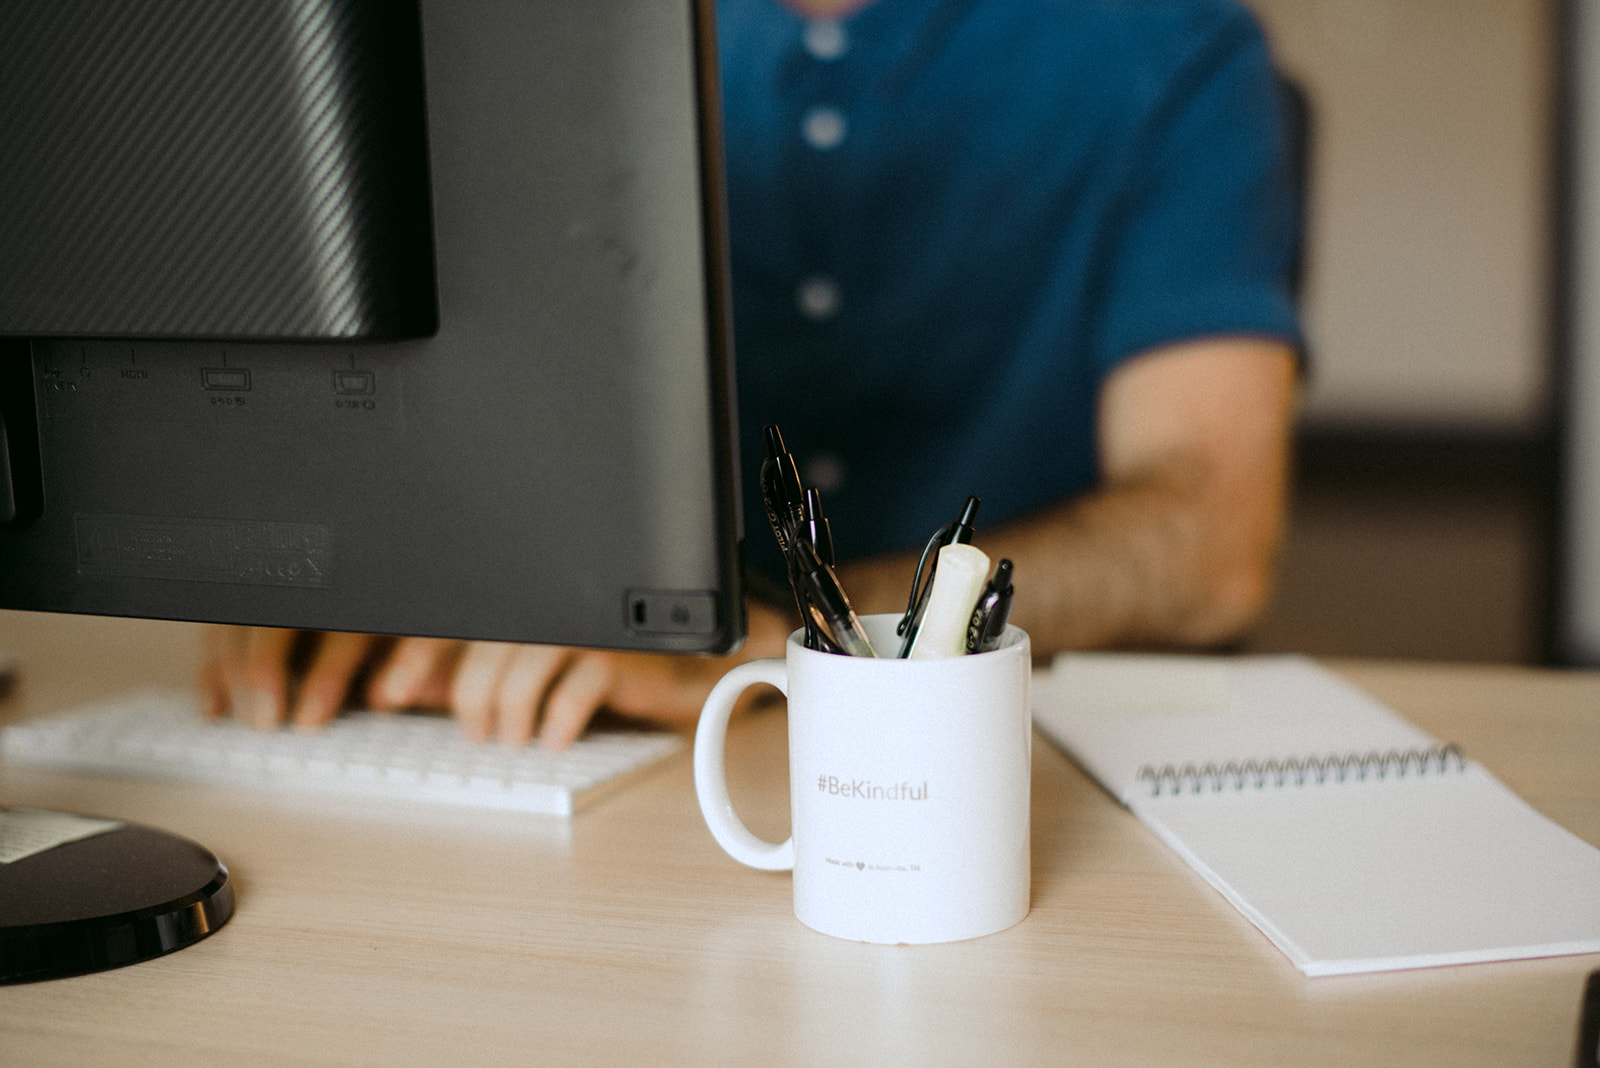 man working on computer with be kindful mug in foreground